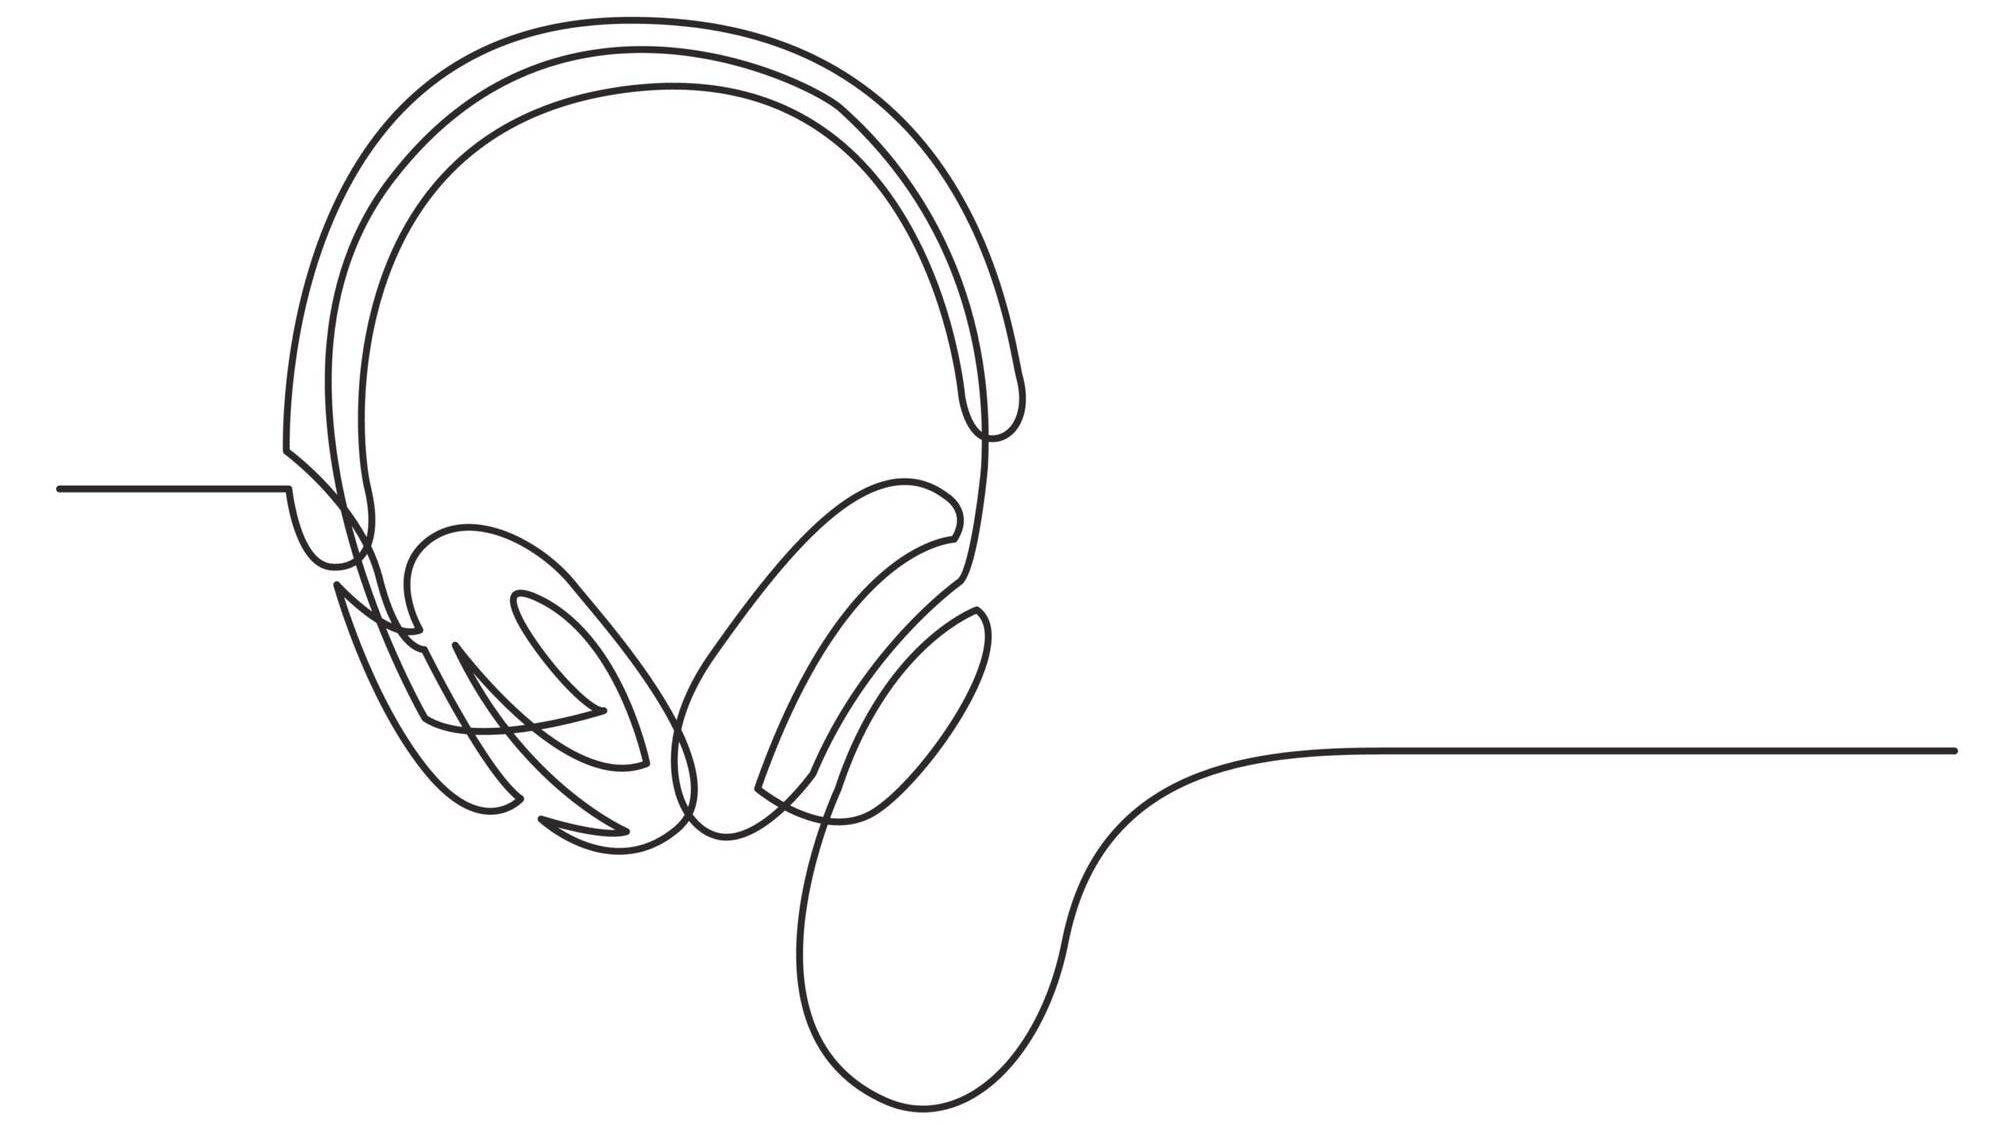 Line drawing of headphones, Rewire, Living, PBS, Mental Health Podcasts